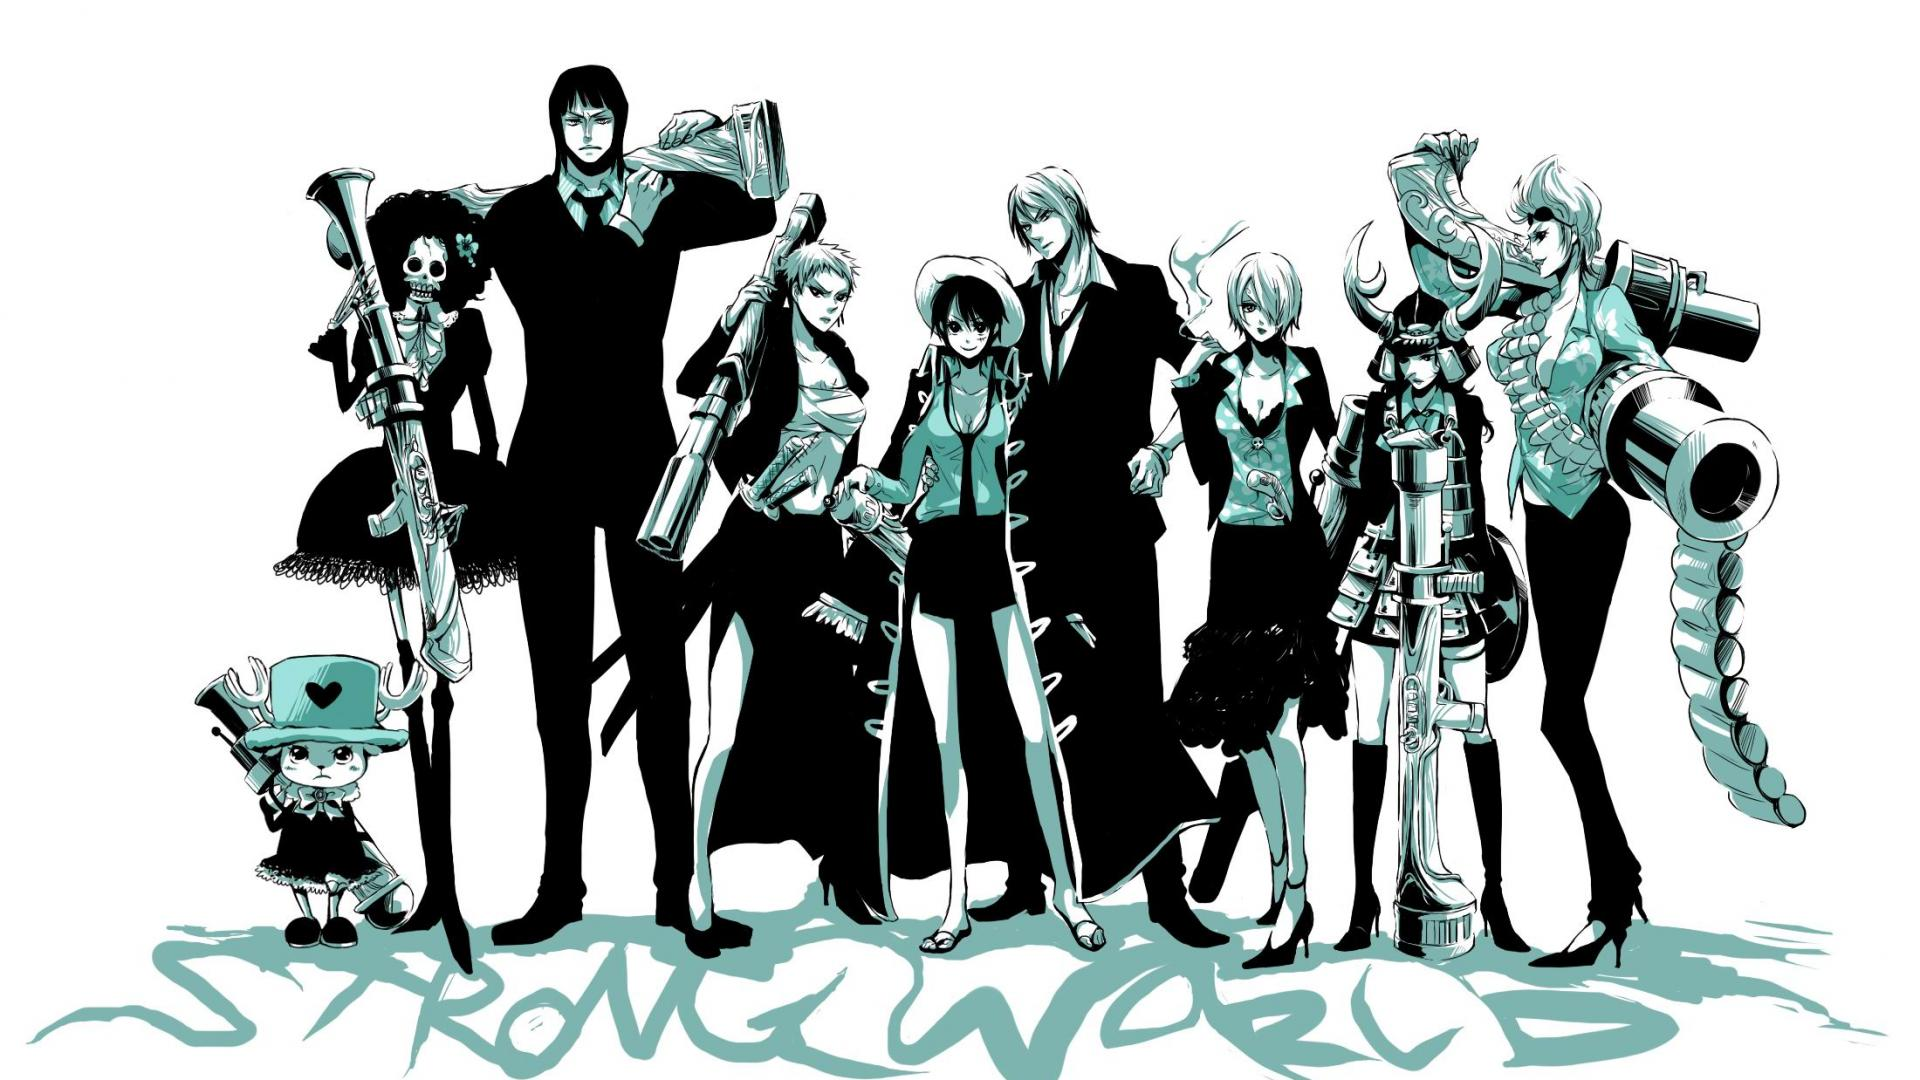 One Piece Hd Wallpapers 43 Wallpapers Adorable Wallpapers